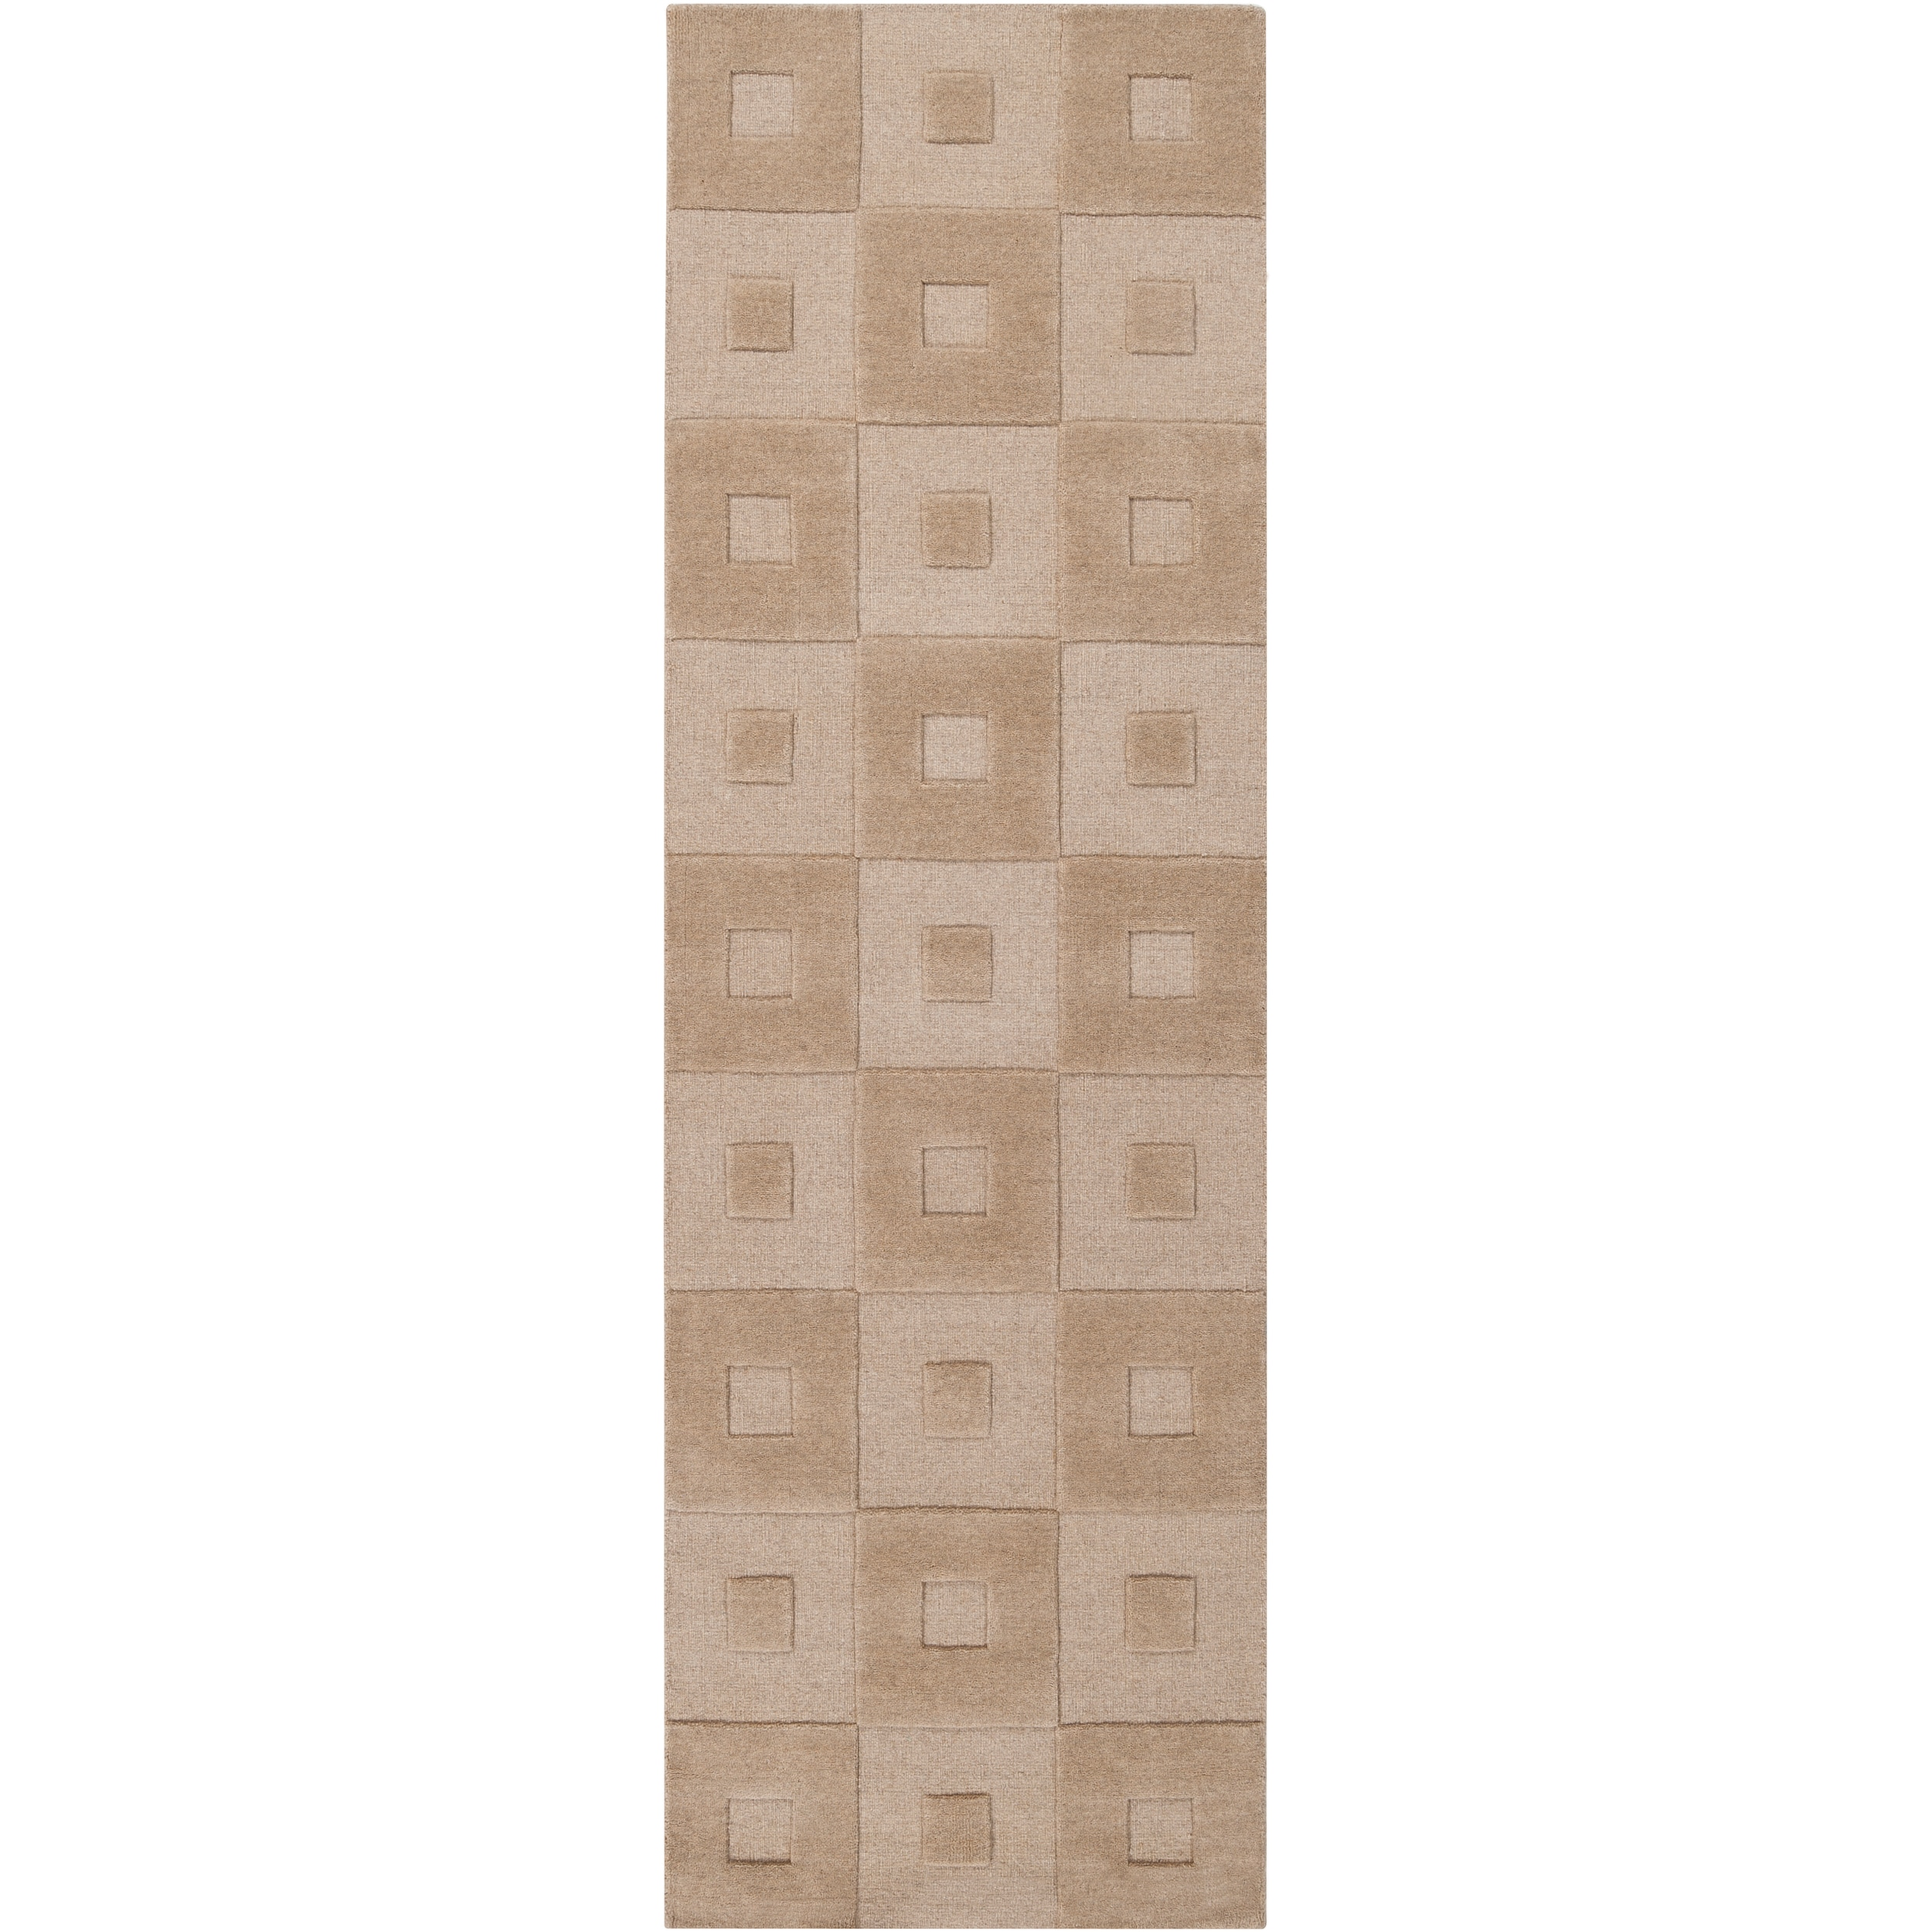 Hand-crafted Solid Beige Geometric Indus Valley Wool Rug (2'6 x 8')